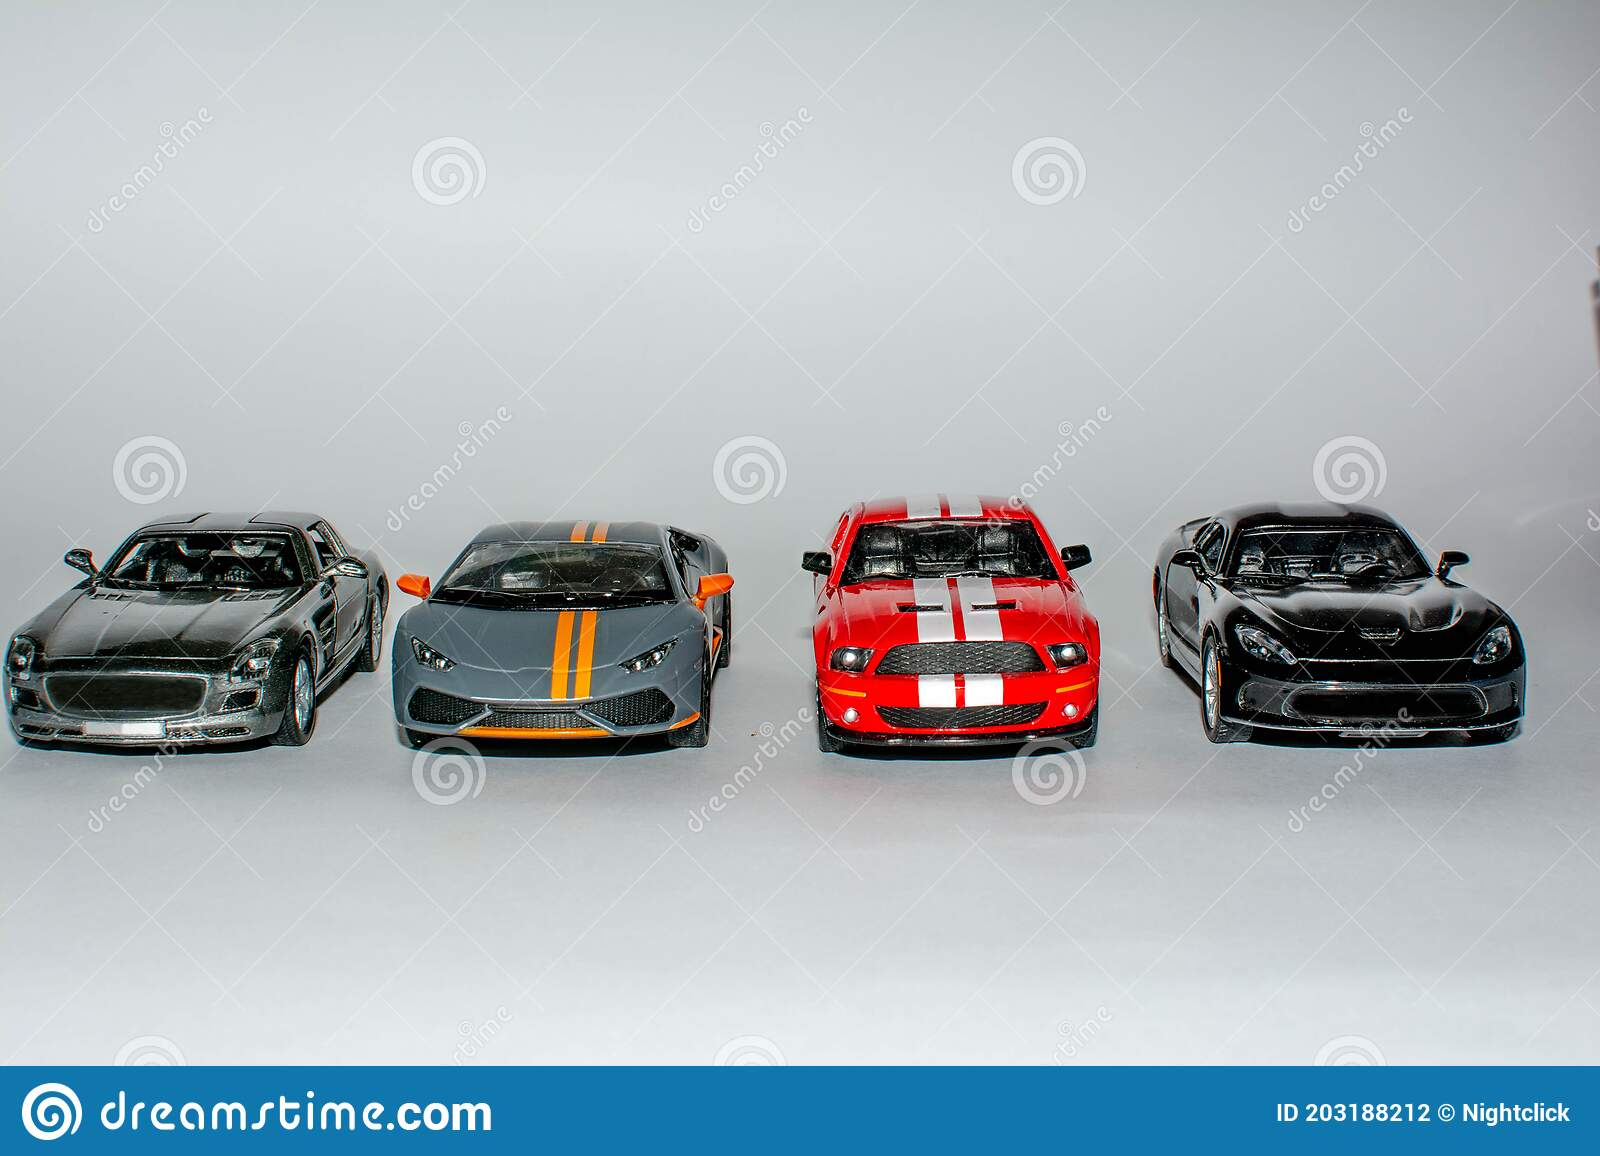 Beautiful Sports Cars Photos And Car Covers Stock Photo Image Of Term Large 203188212